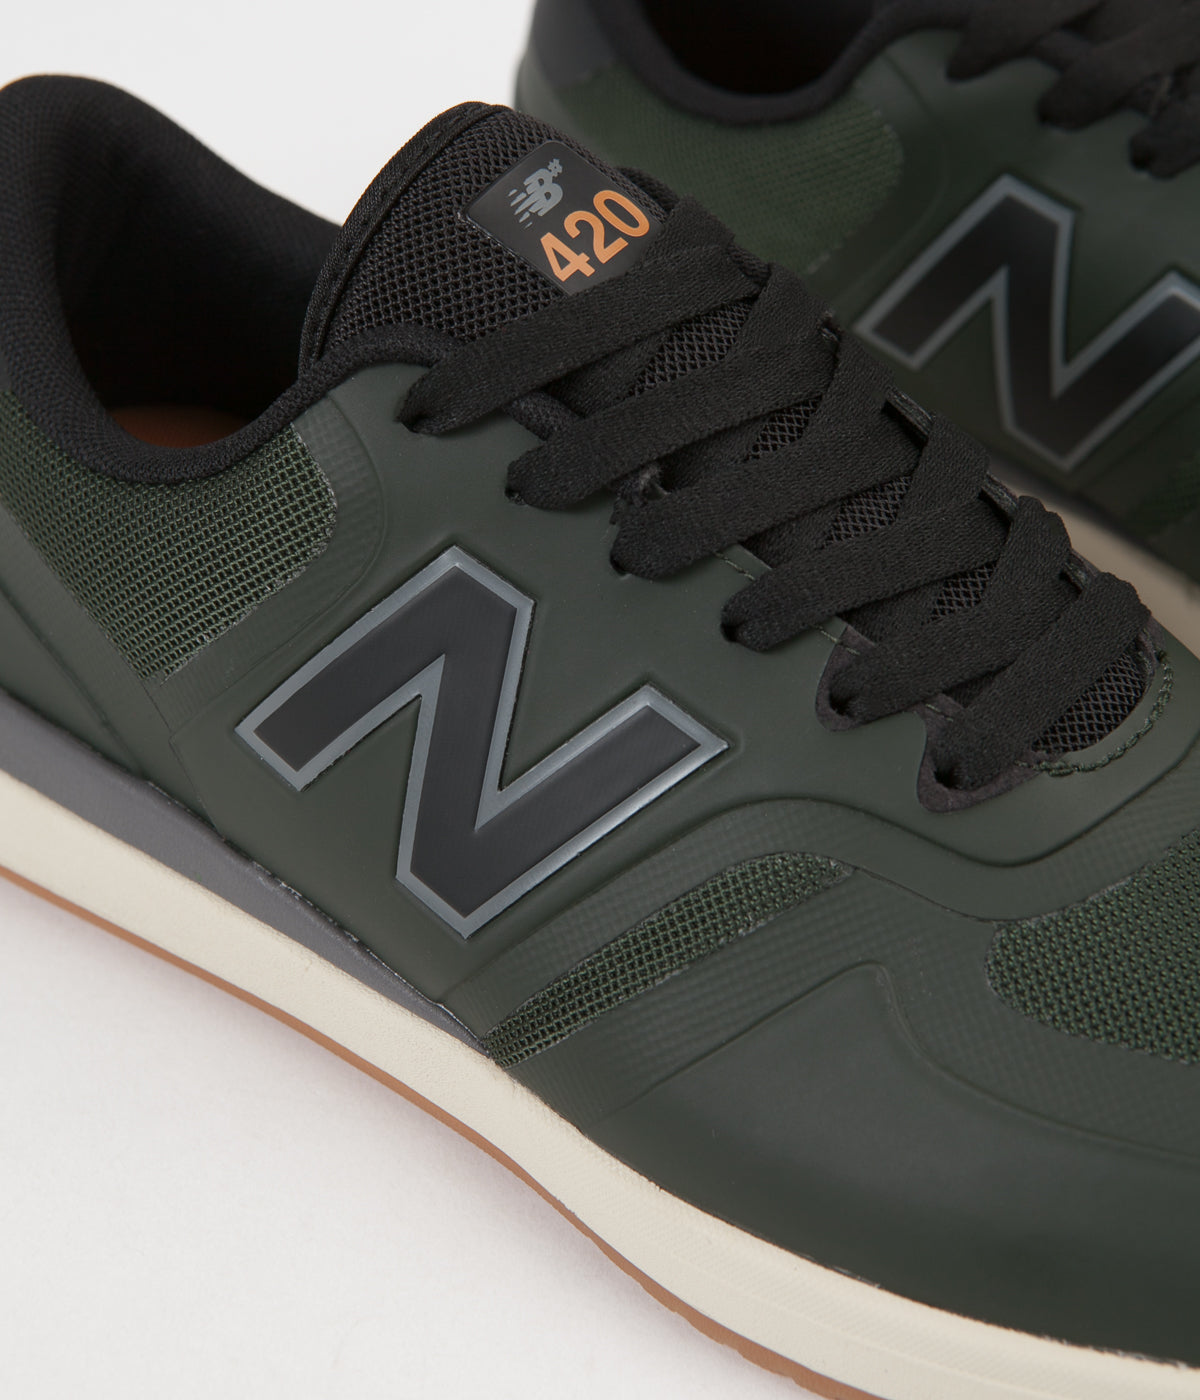 9f44bec369f ... ireland new balance numeric 420 shoes forest gum 13ddd 6fe0b ...